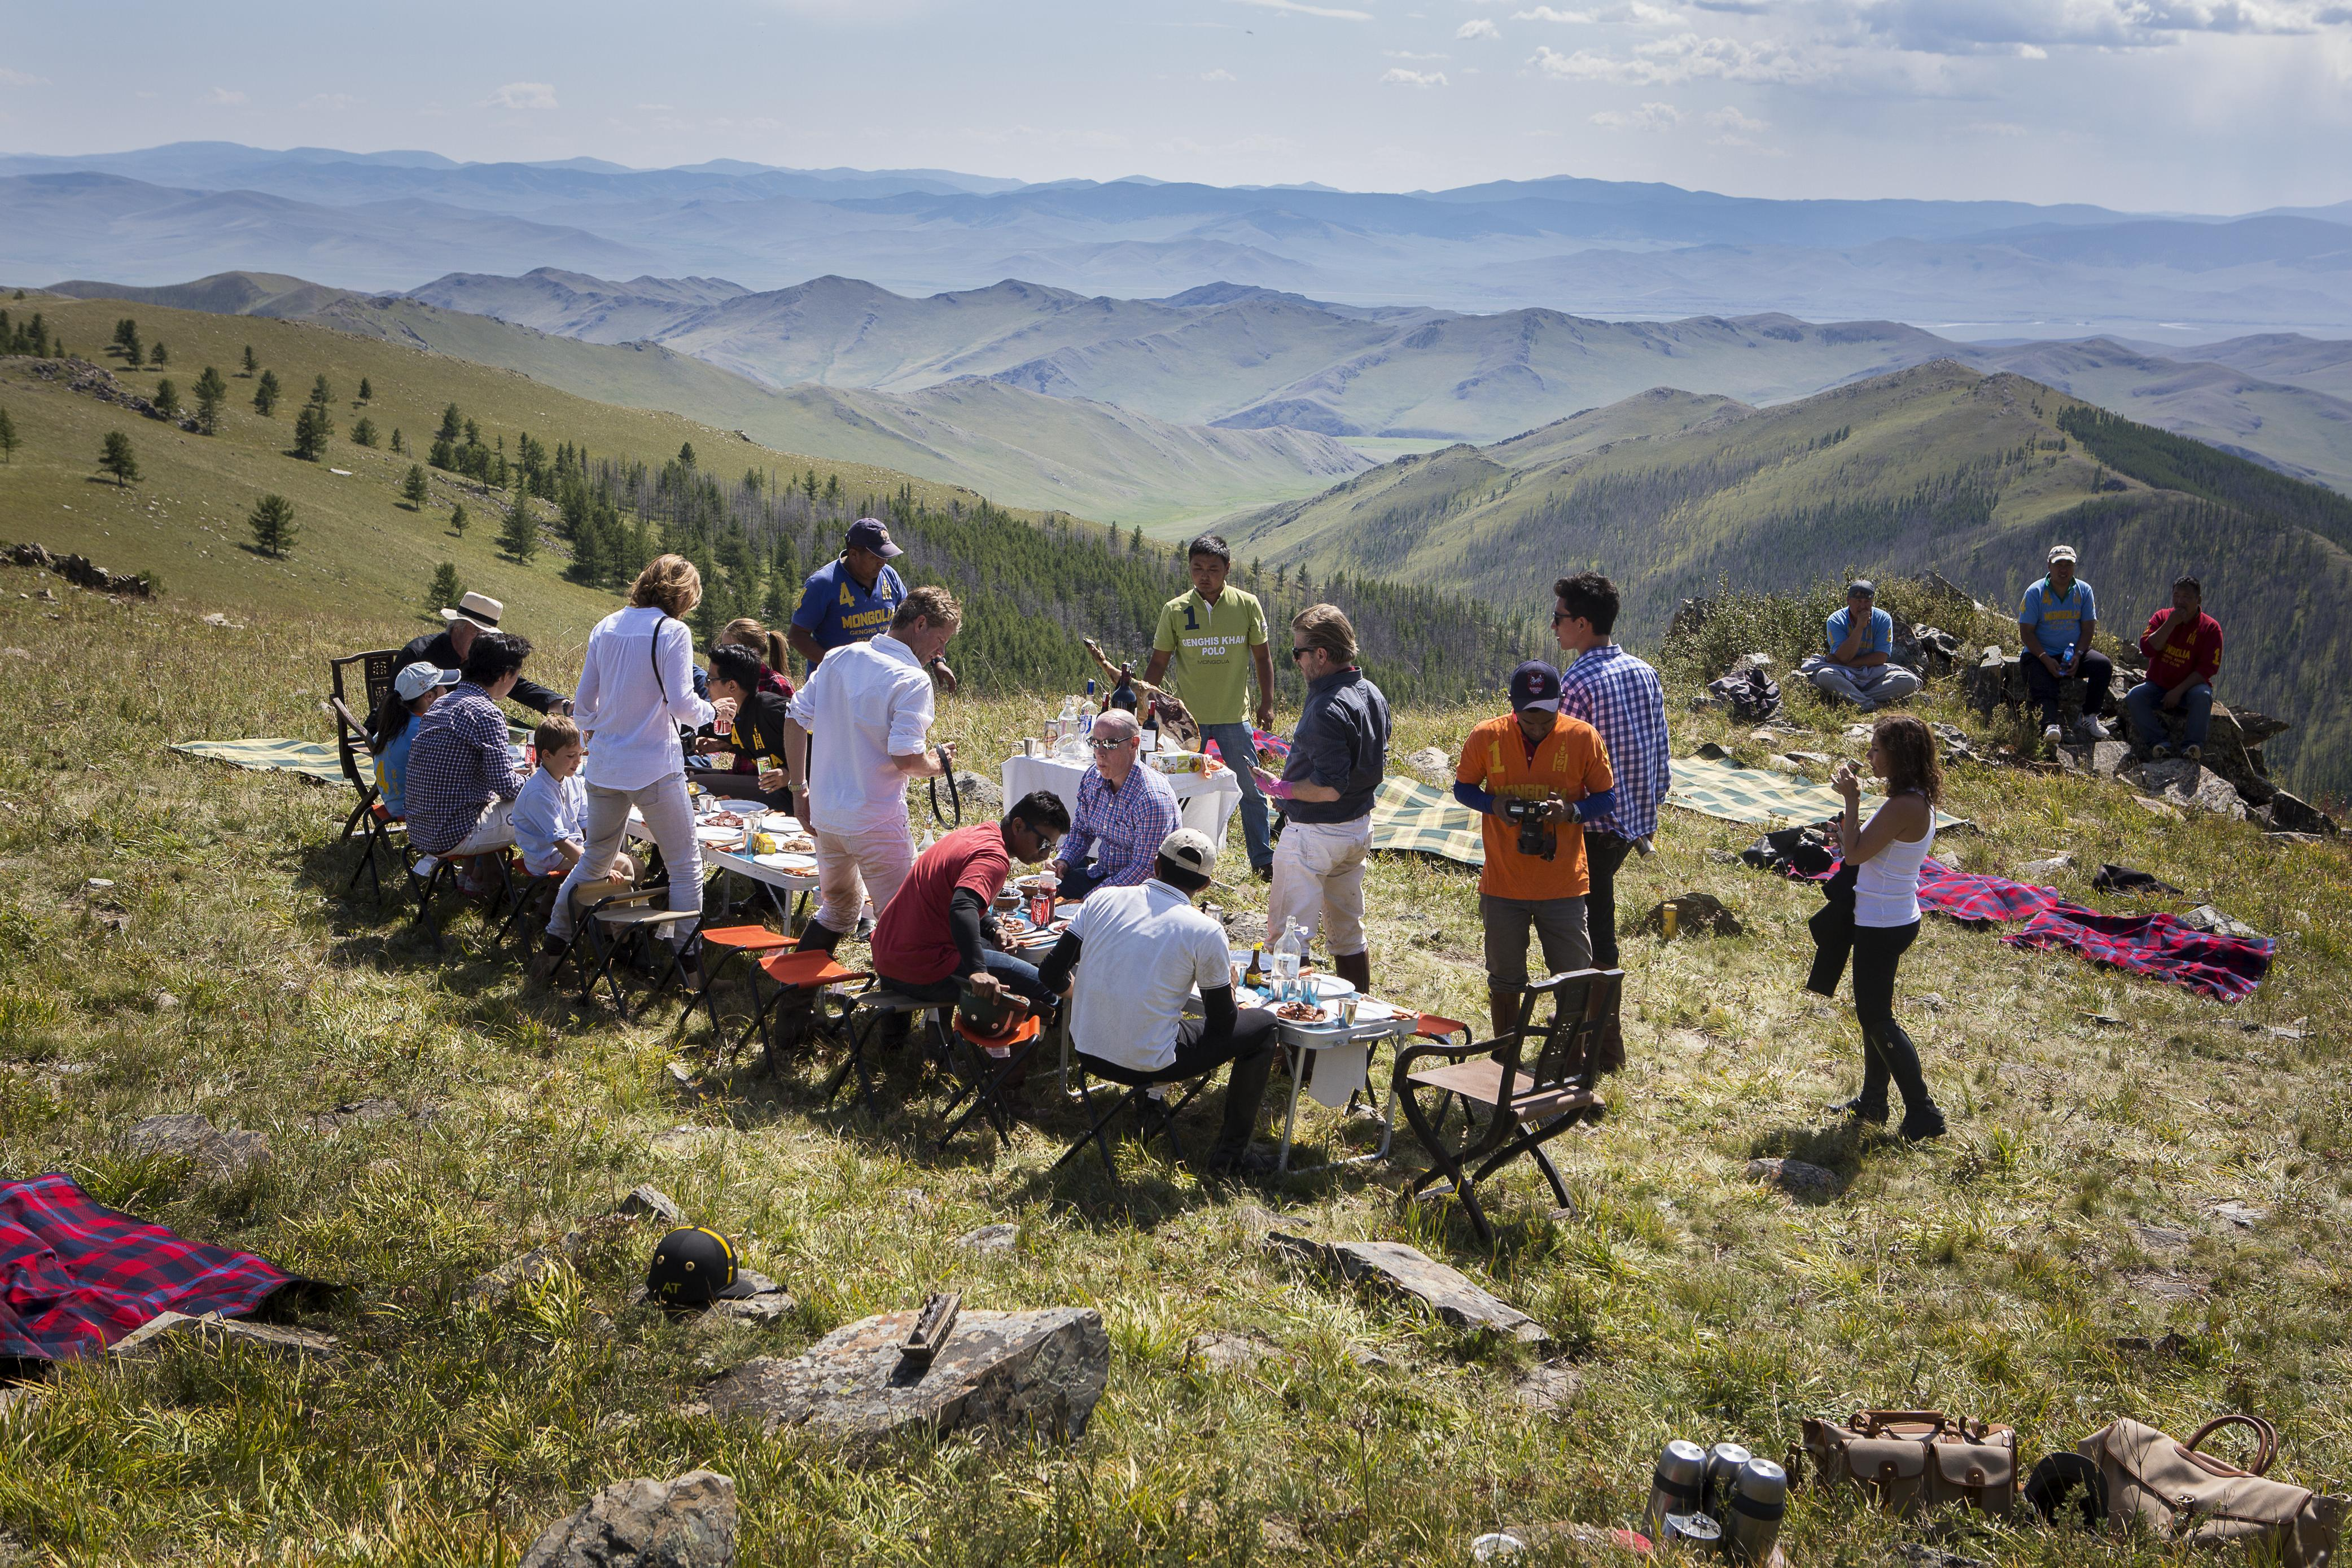 Picnics in the Mountains on Mongolia